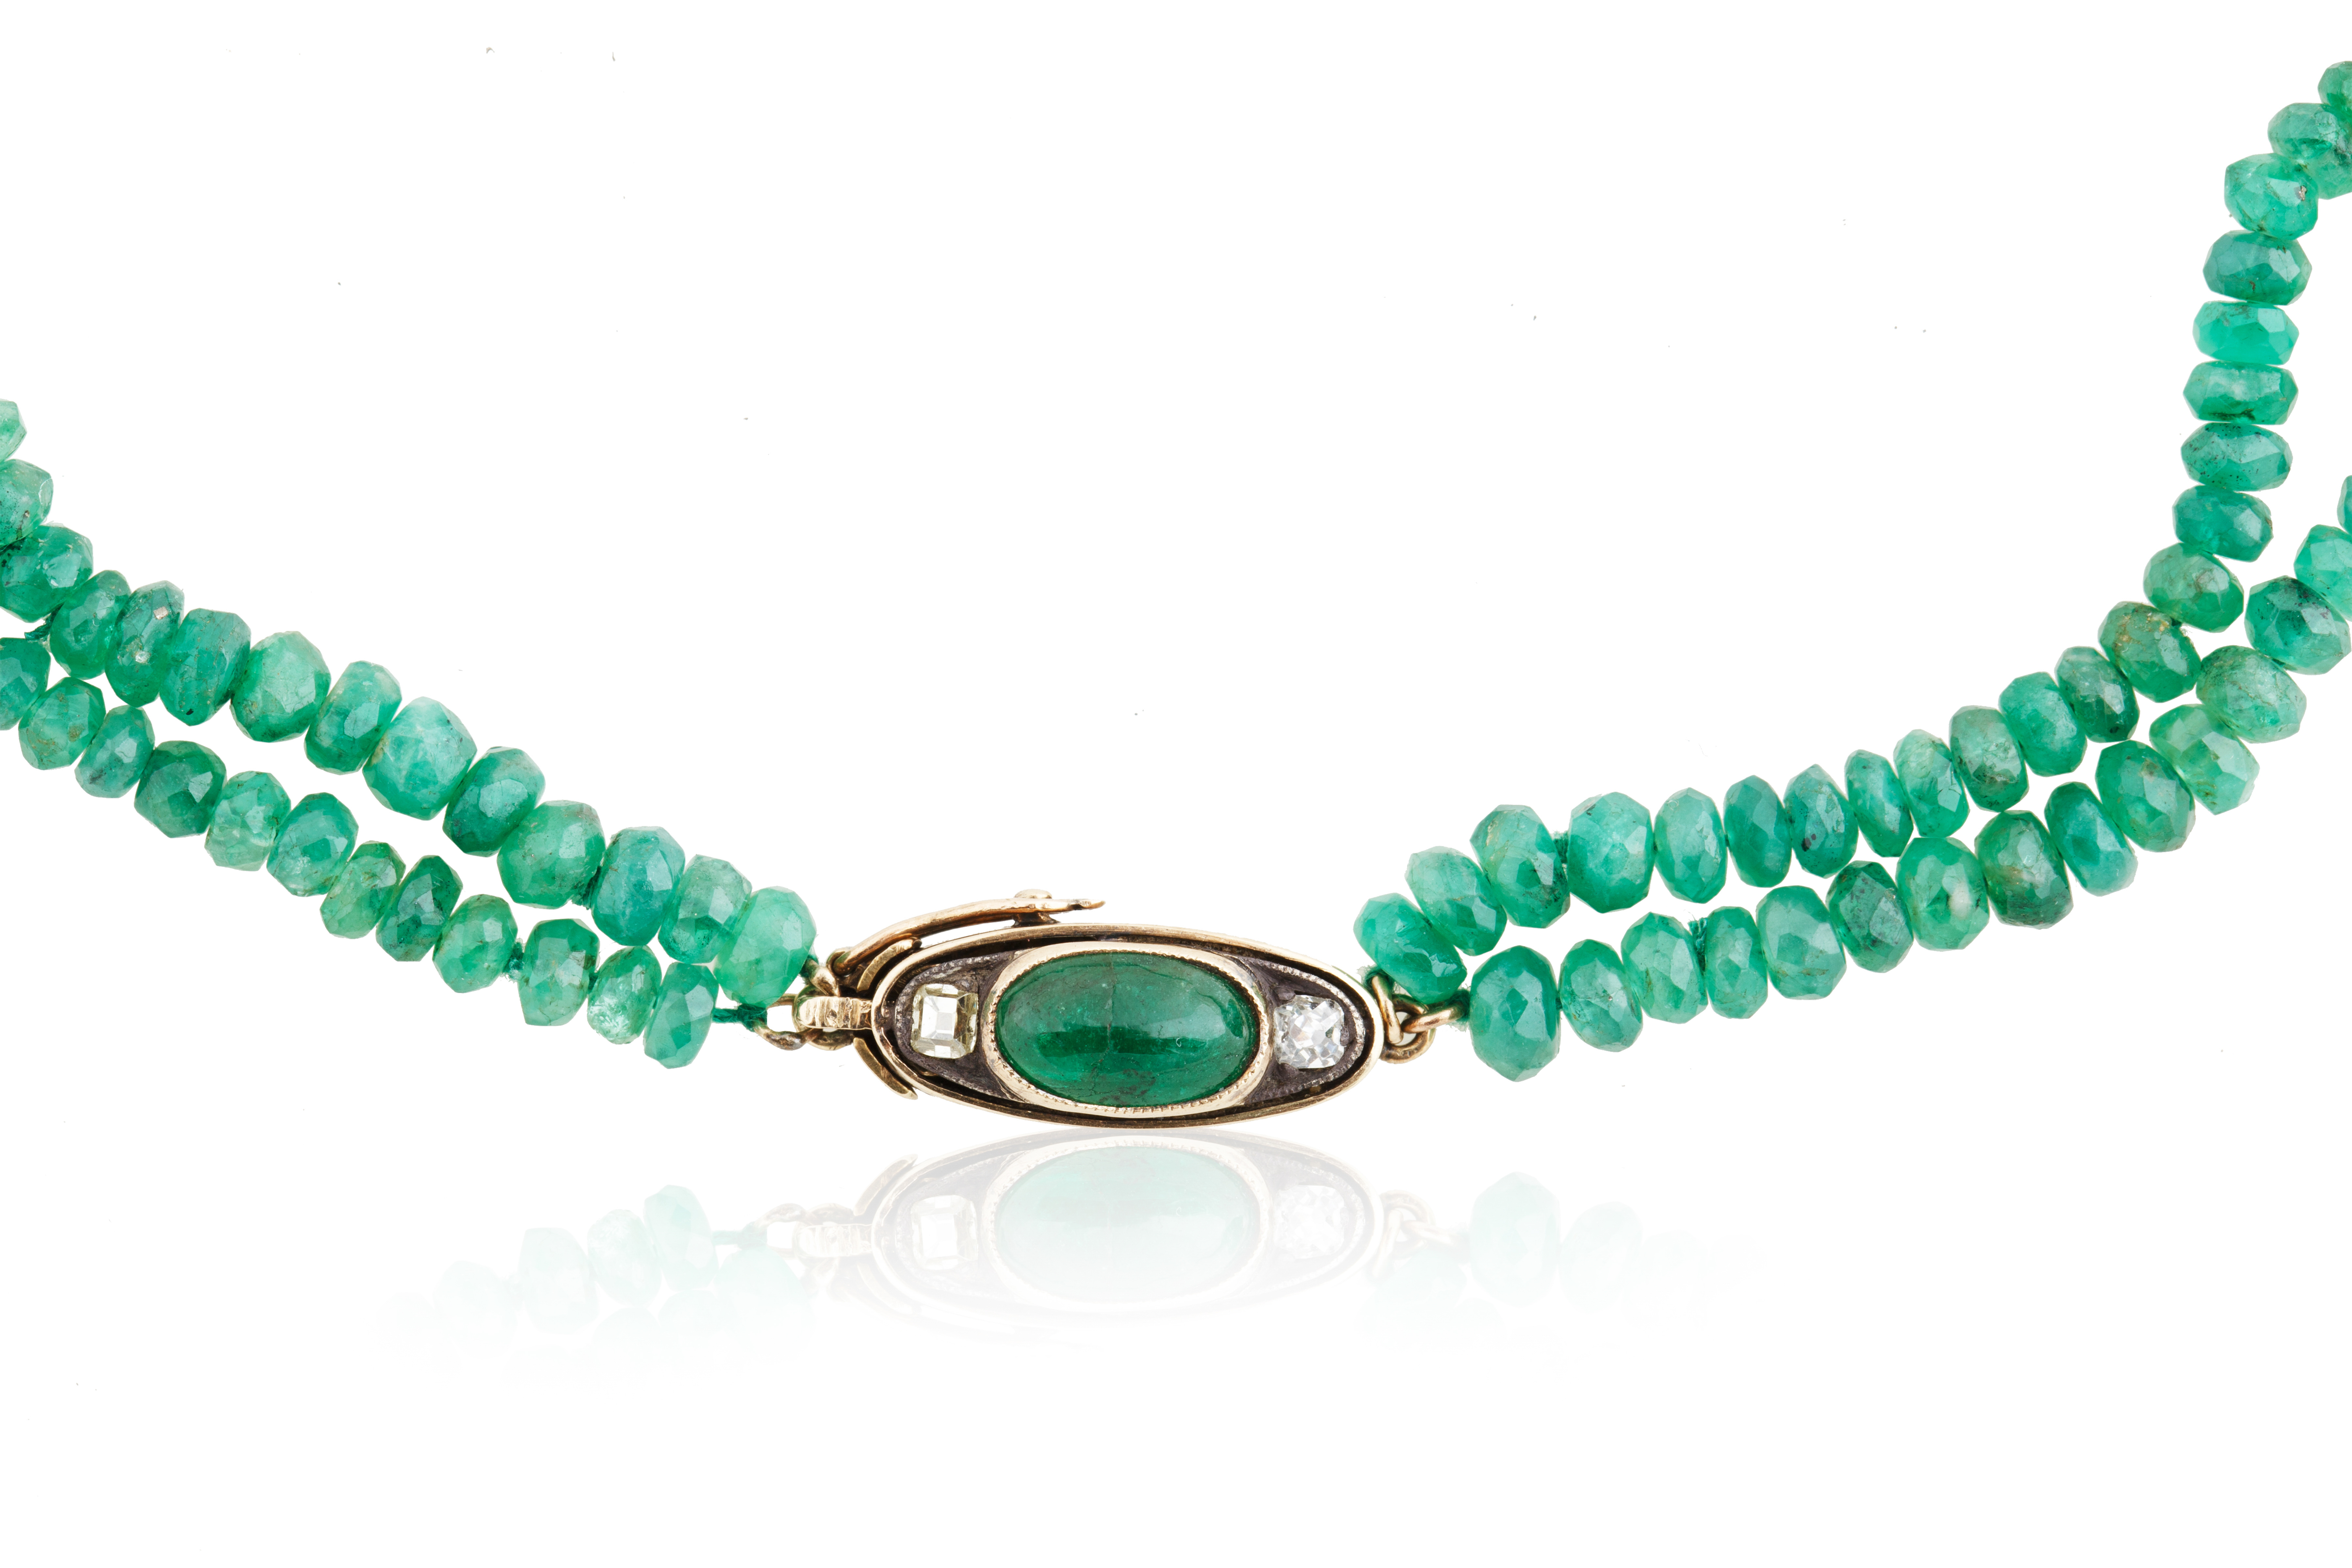 AN EMERALD, DIAMOND AND JADEITE BEADED NECKLACE, LIKELY FRENCH - Image 2 of 5